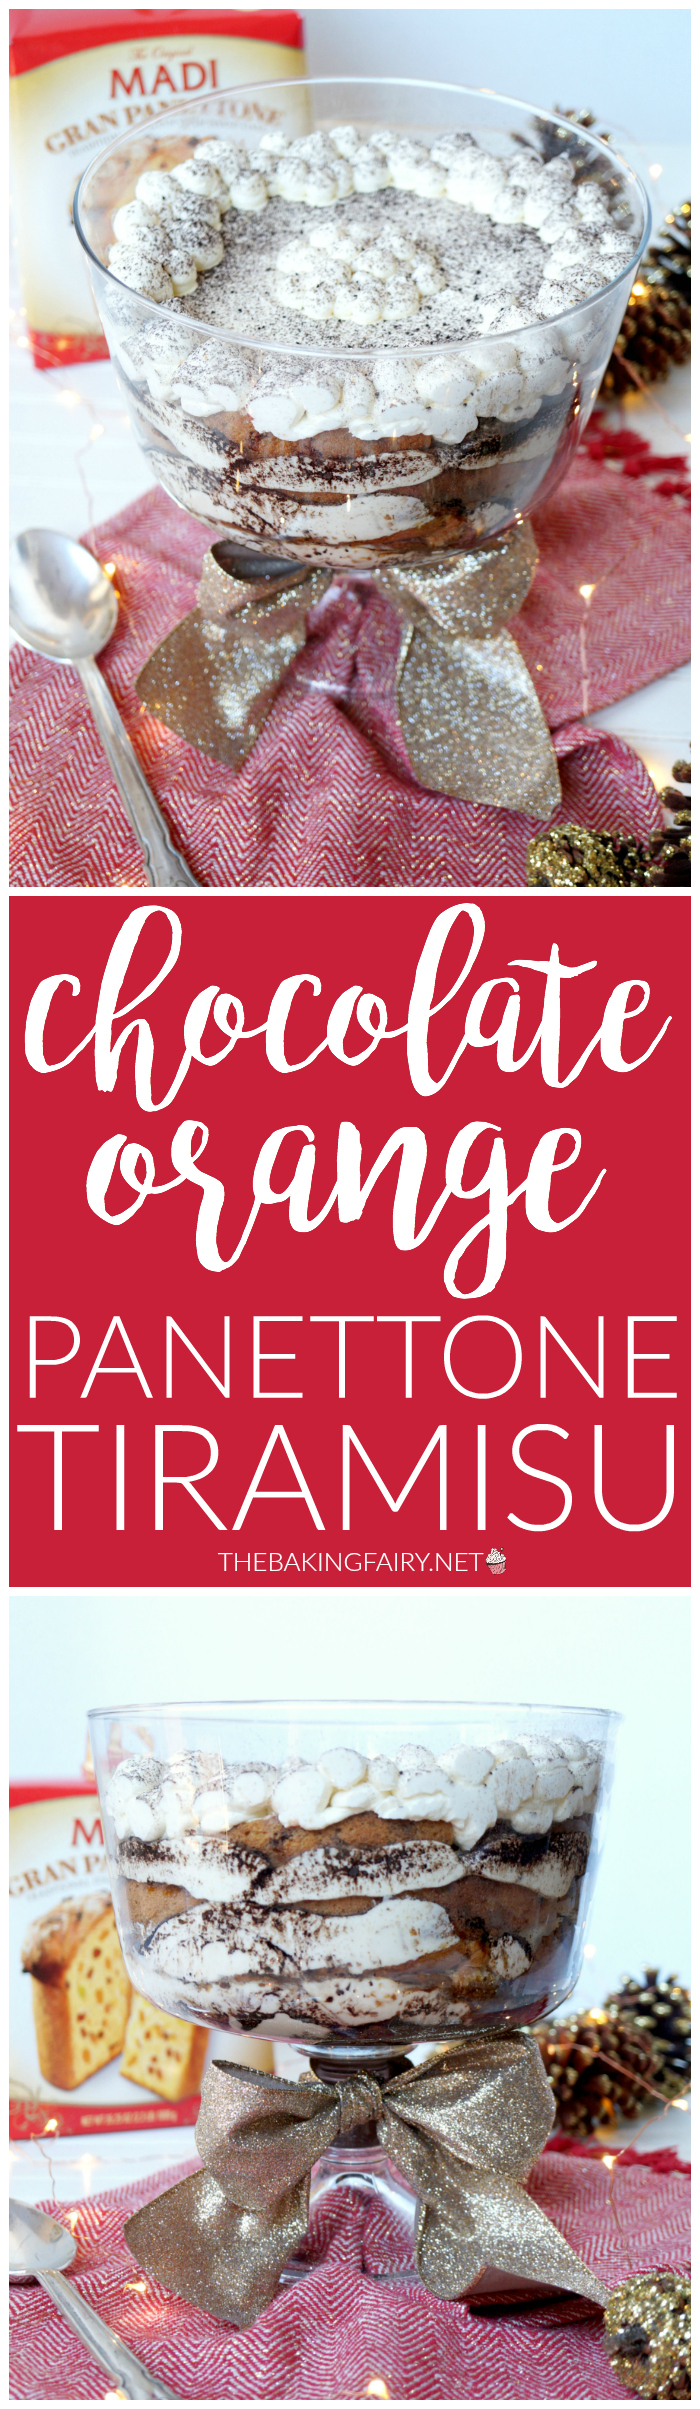 chocolate orange panettone tiramisu | The Baking Fairy